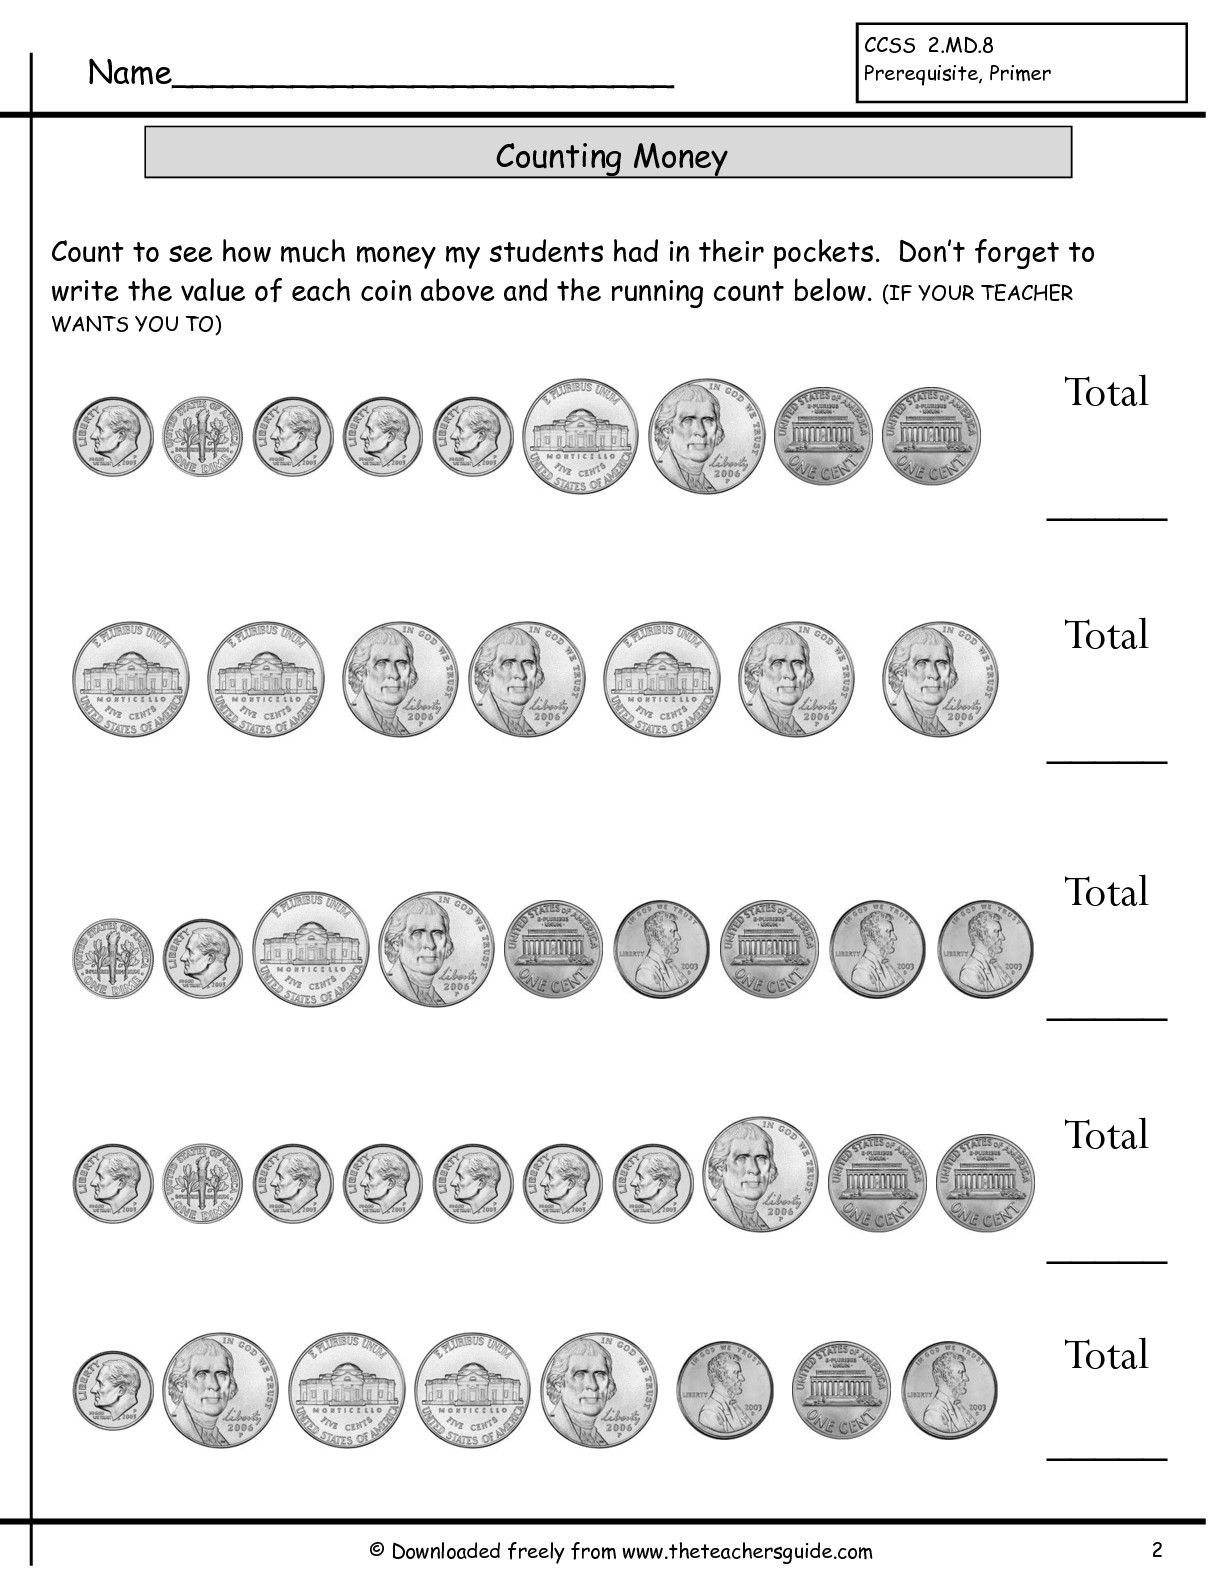 Counting Coins Worksheets From The Teacher S Guide Counting Money Worksheets Money Math Worksheets Money Worksheets